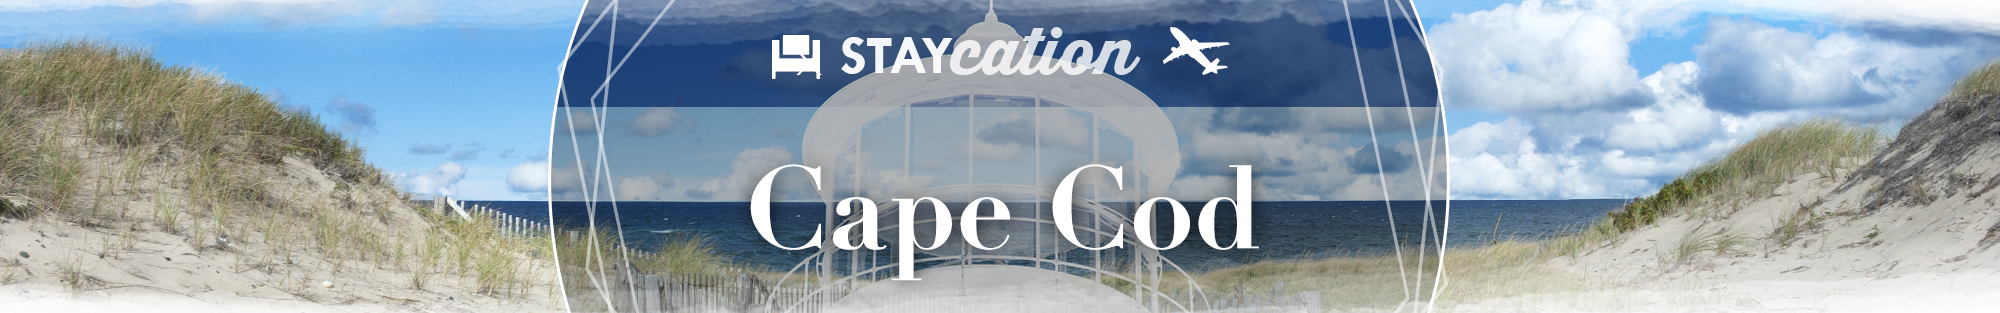 Staycation - Cape Cod